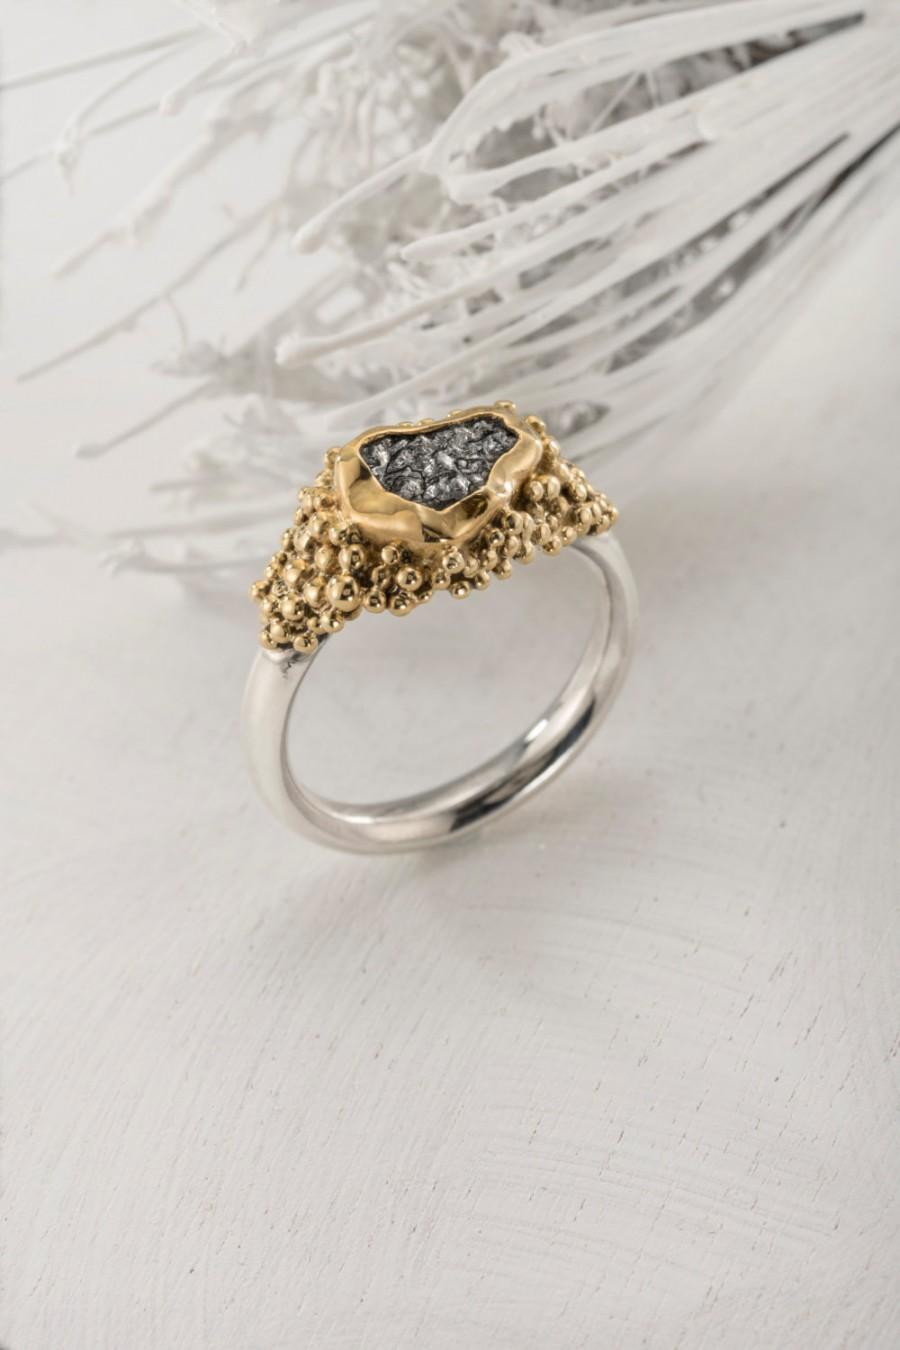 design d stone dawes products opaque hewn jennifer raw rings ring diamond engagement hwco three